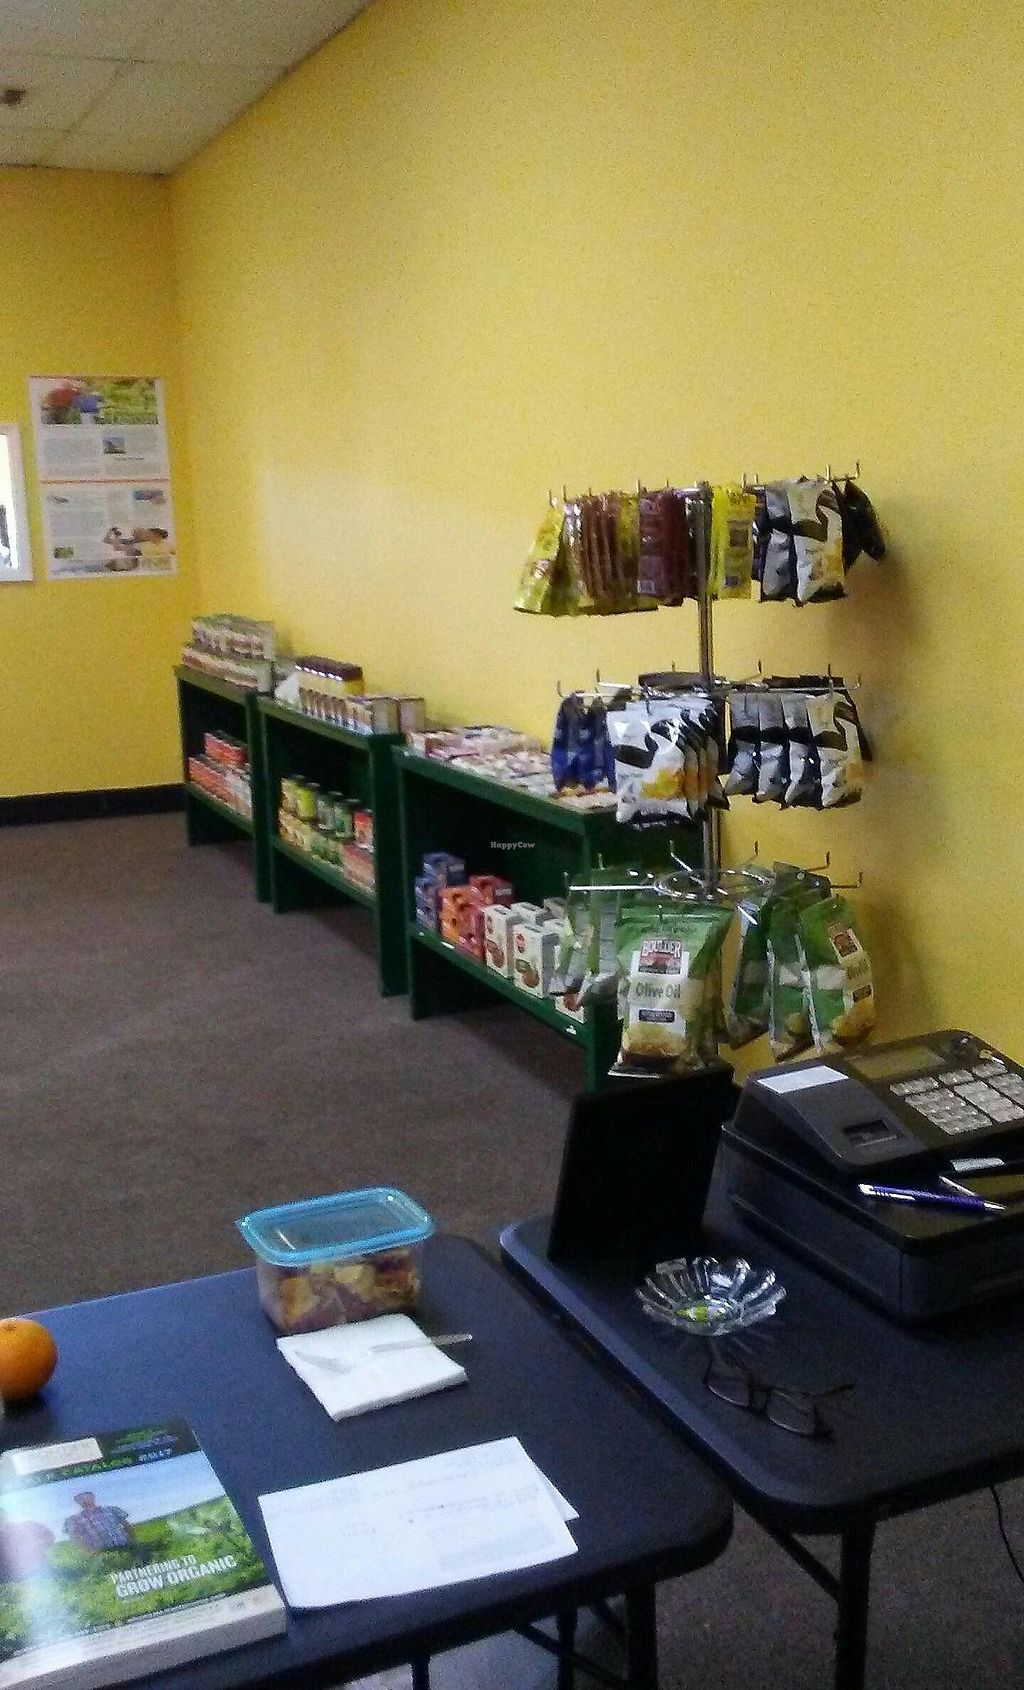 "Photo of Just 4 U Vegan Market  by <a href=""/members/profile/myra975"">myra975</a> <br/>GEORGIA LOCATION: Market <br/> December 13, 2017  - <a href='/contact/abuse/image/54553/335320'>Report</a>"